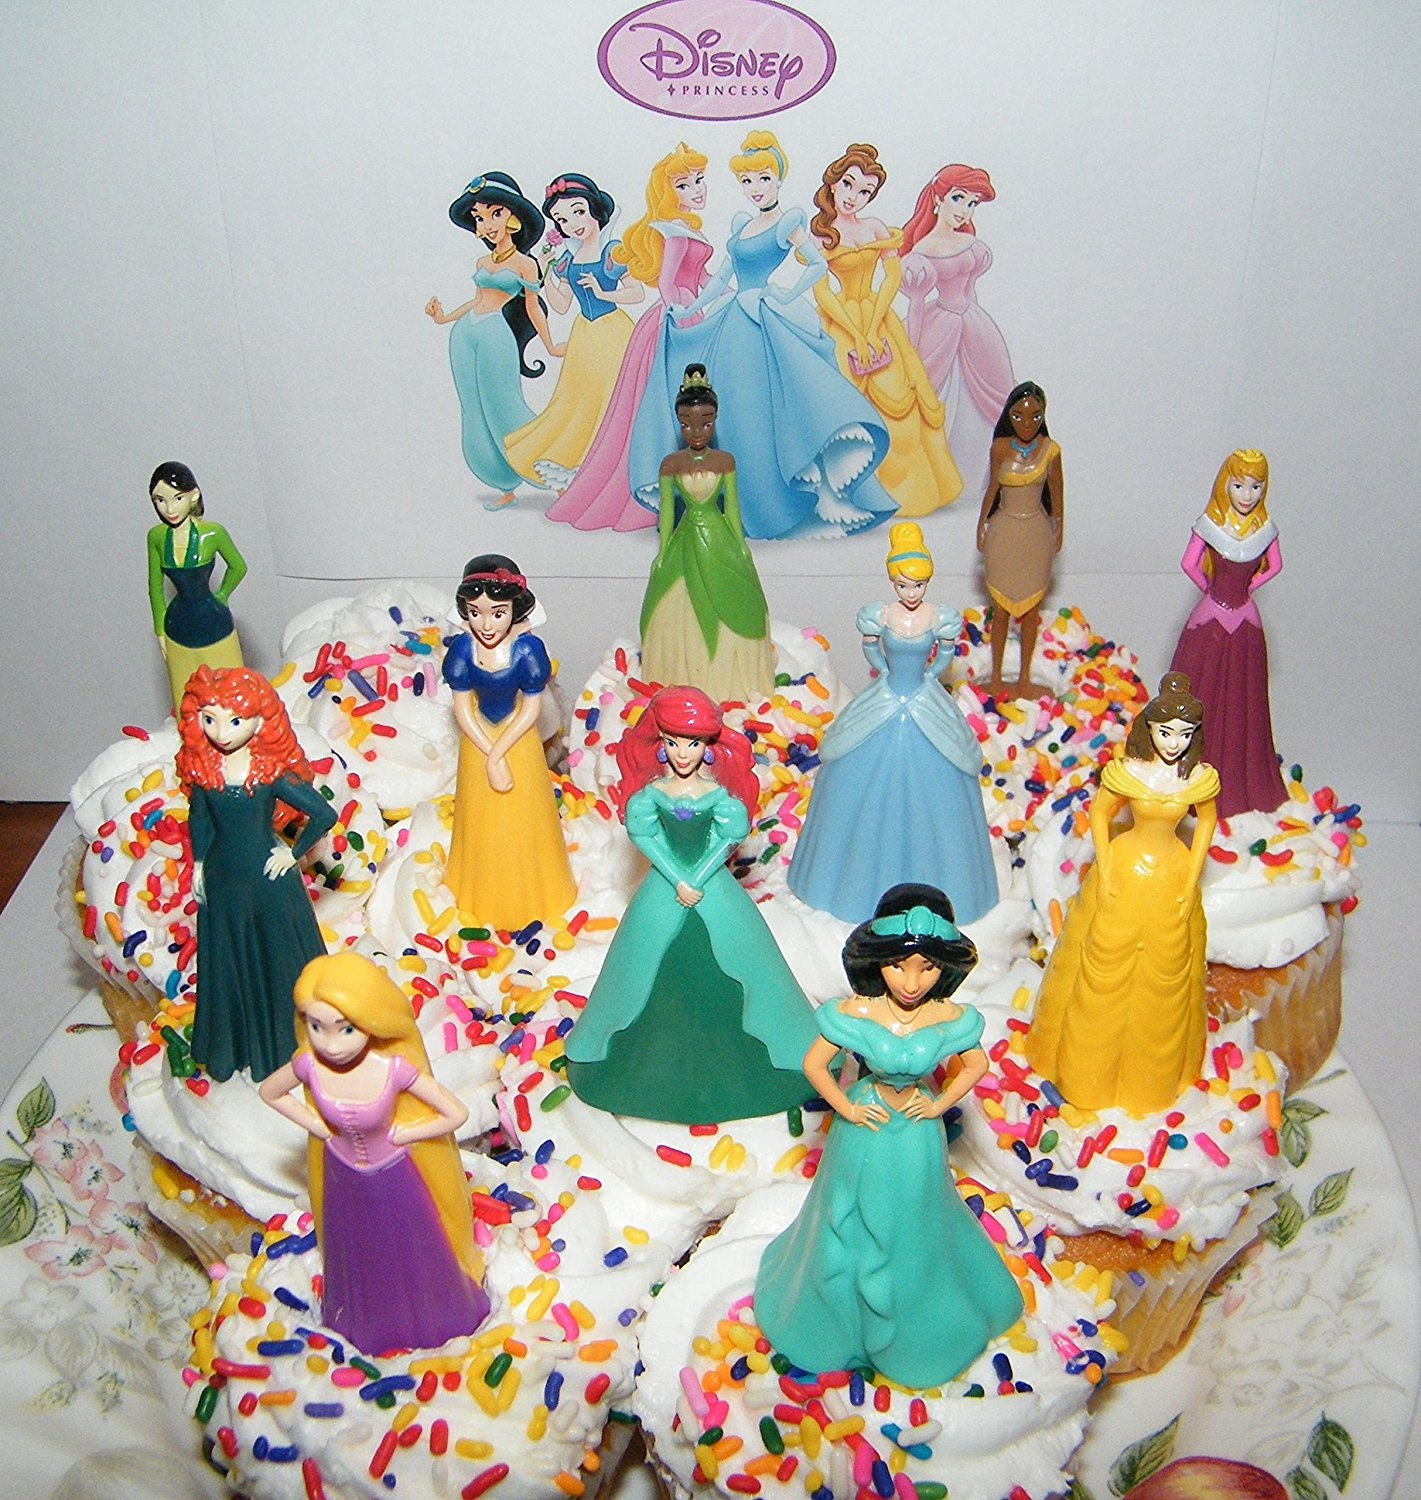 Disney Princess Deluxe Cake Toppers Cupcake Decorations Set Of 13